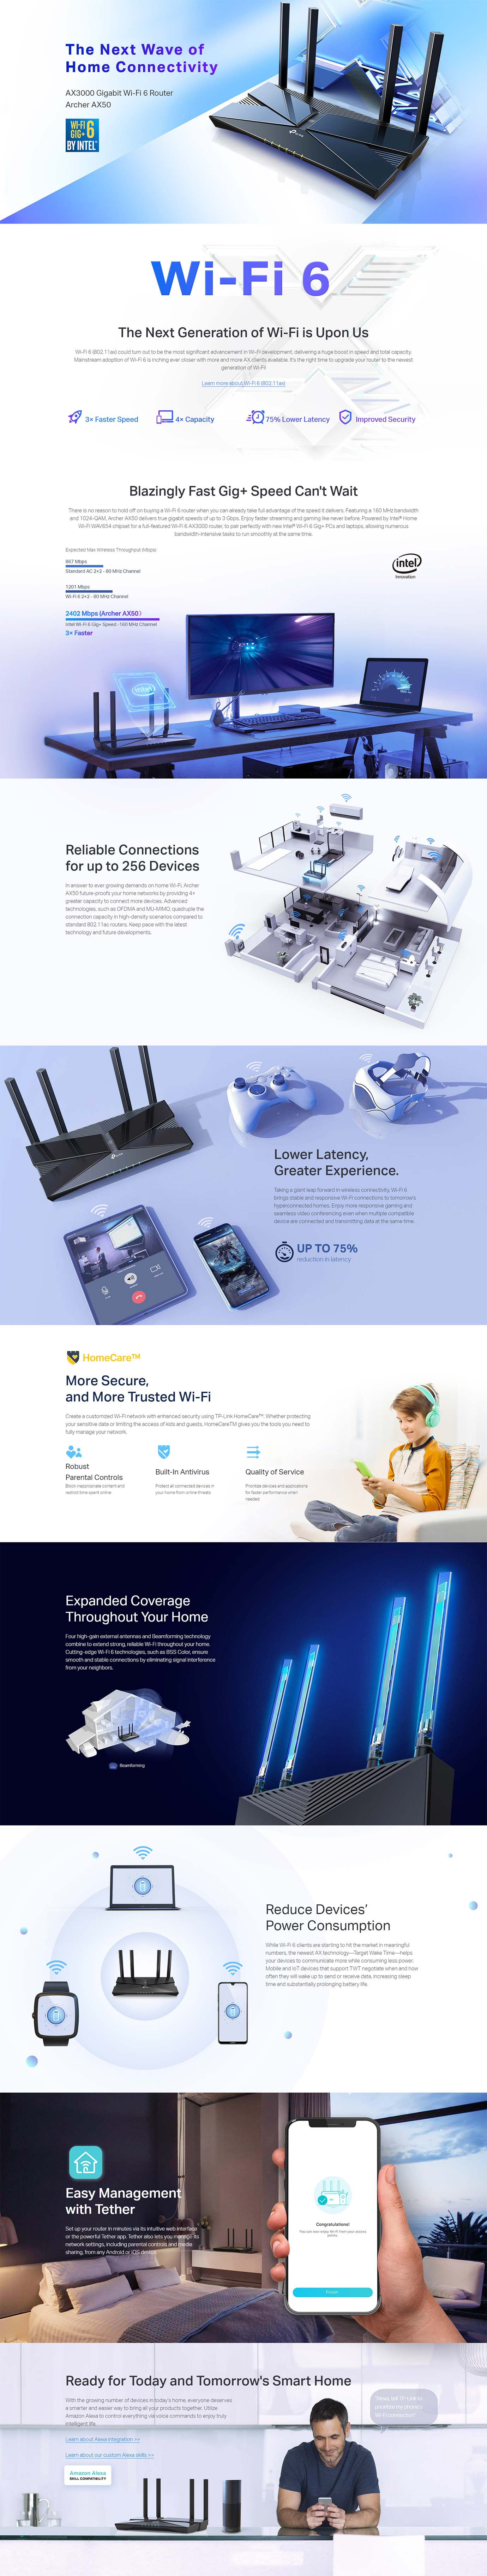 TP-Link AX50 AX3000 Dual Band Gigabit WiFi 6 Router Product Introduction